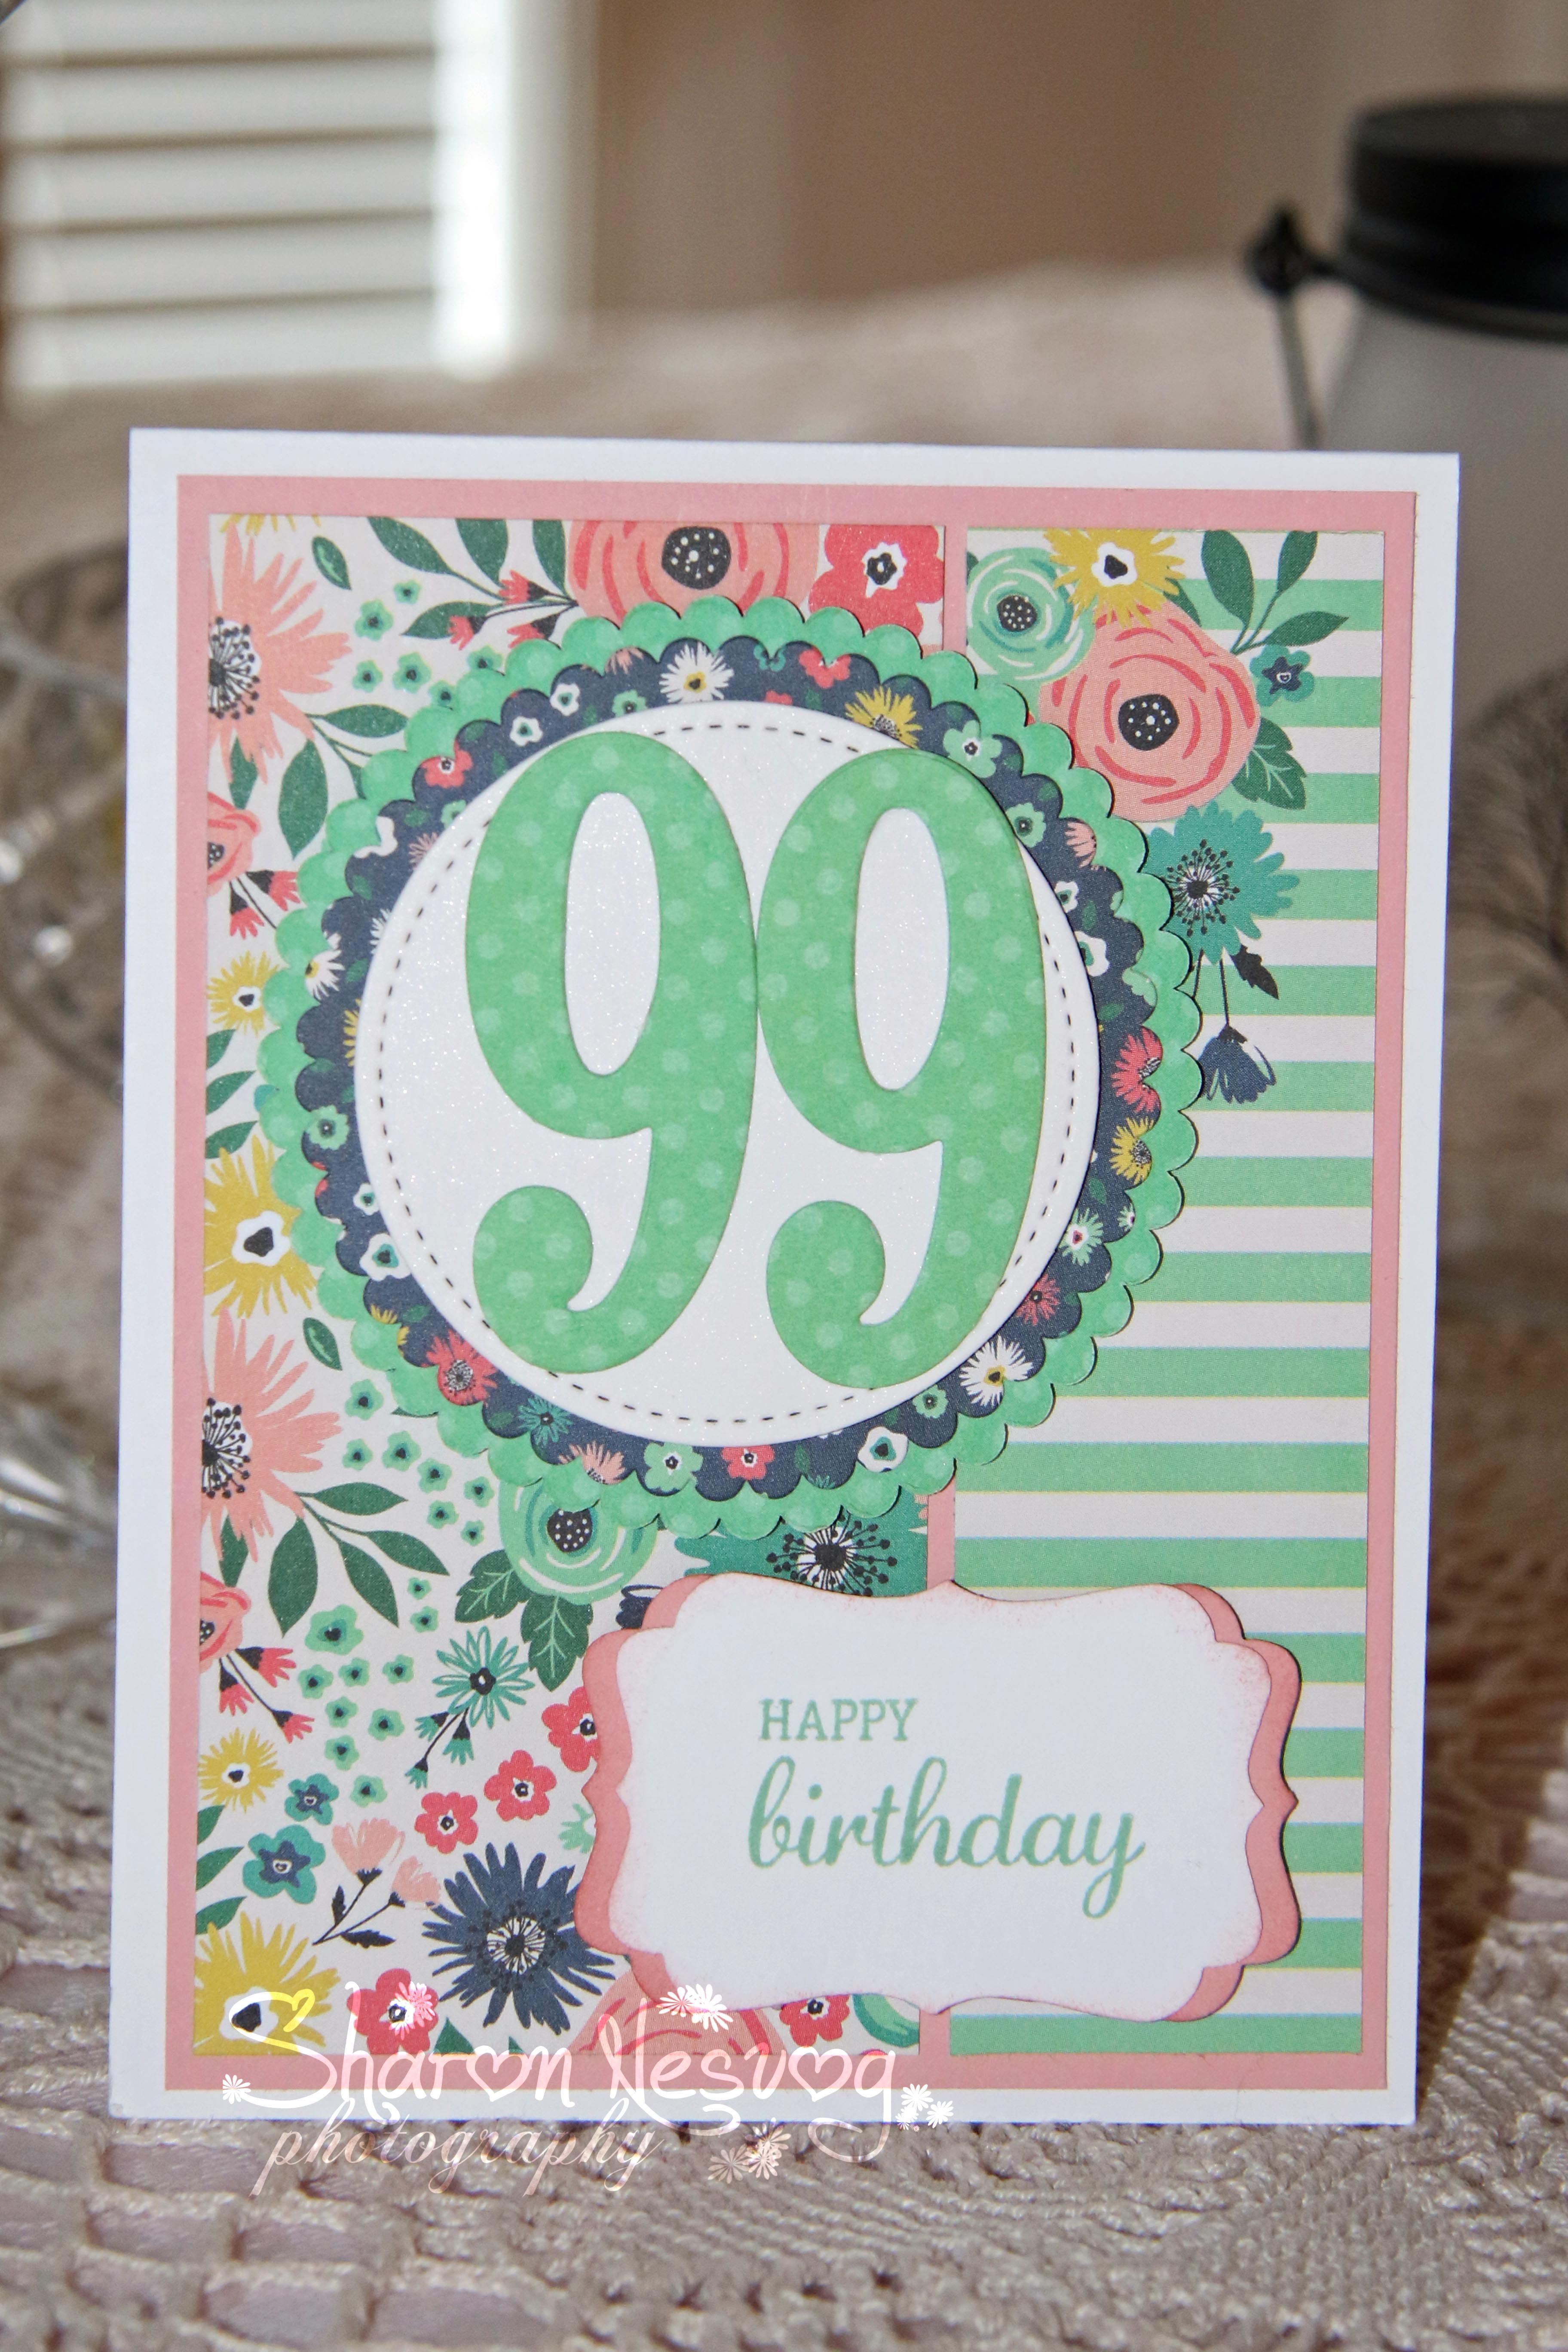 I Created This Birthday Card For My Aunt Who Celebrated Her 99th On Mar 14 2017 Used EchoPark Paper And Some SU Cardstock Cutting Tools